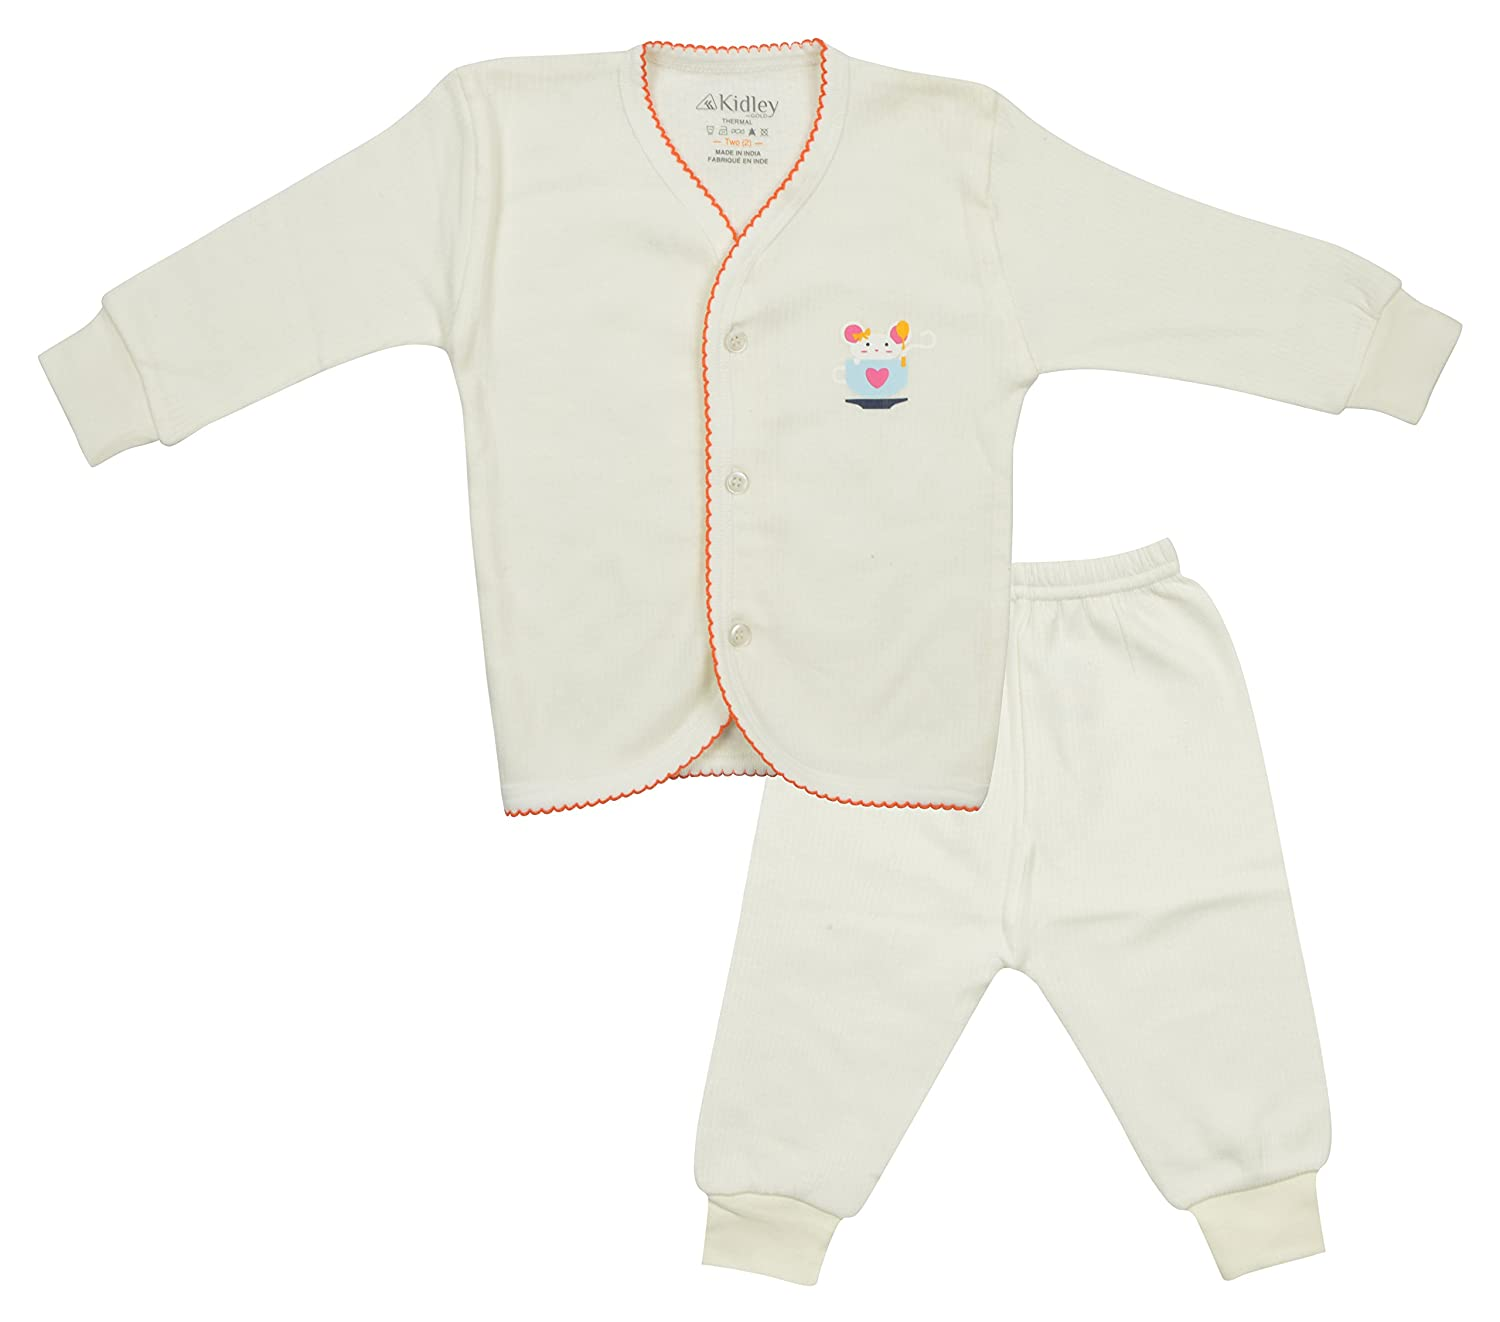 Kidley Cotton Thermal Set 00 Amazon Clothing & Accessories